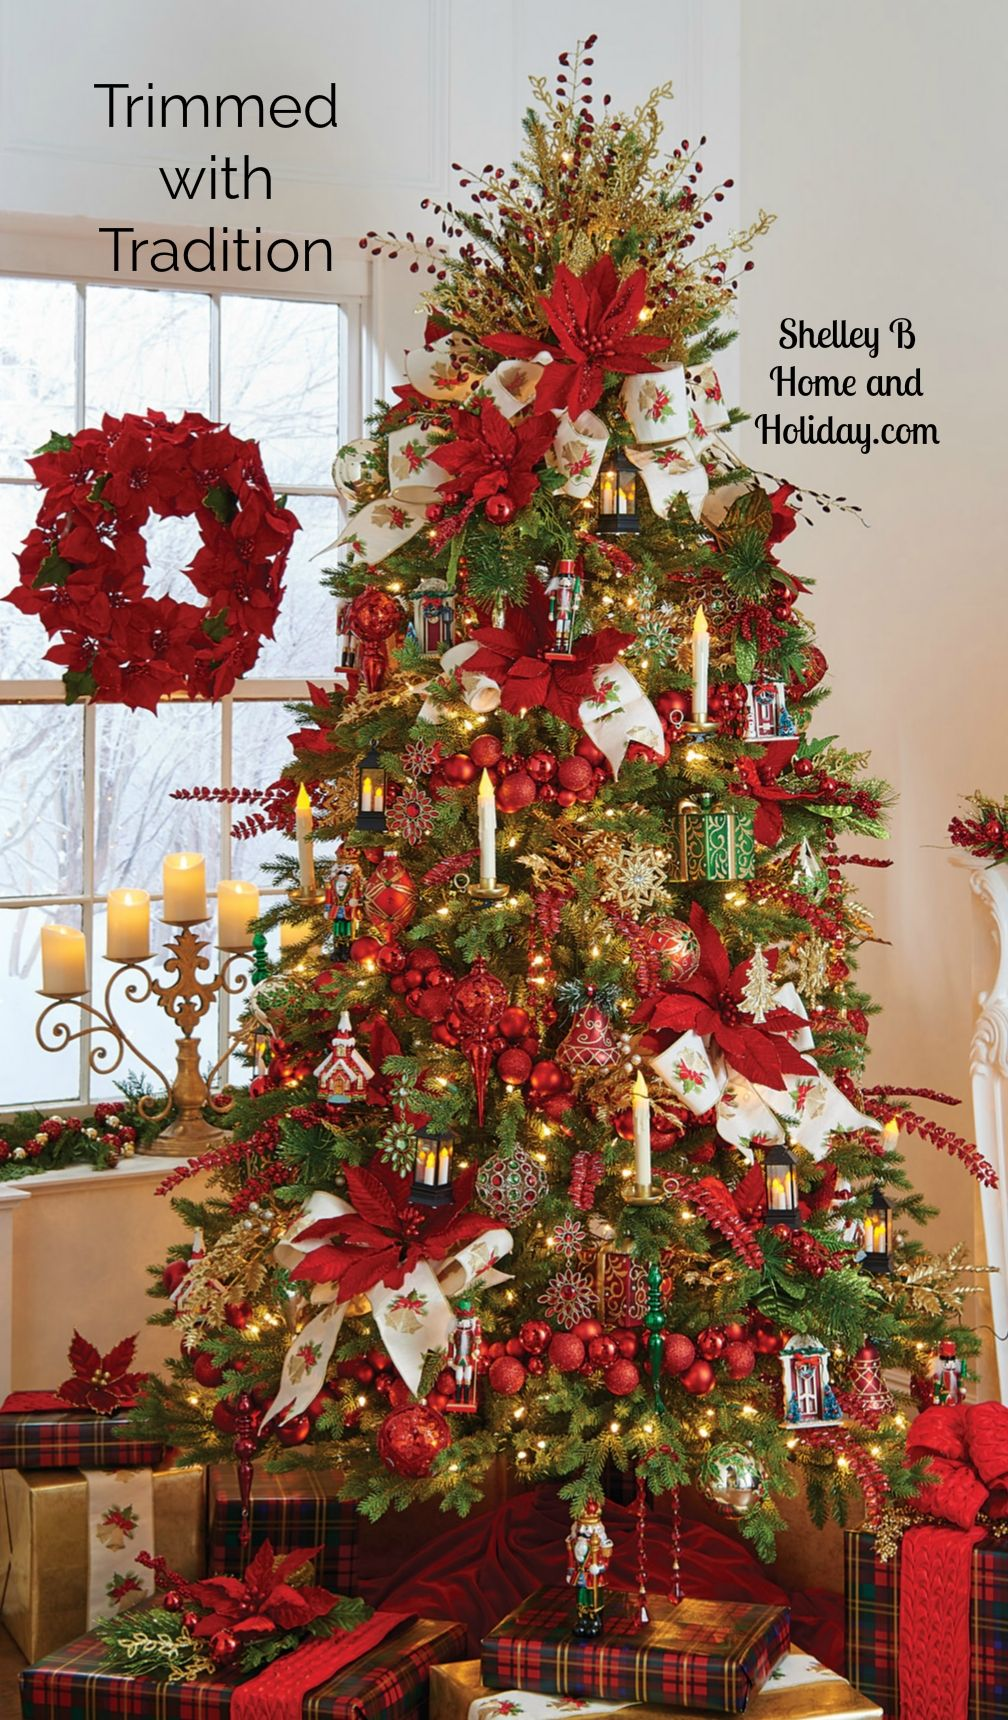 Shelley B Christmas Tree Kits Include A Collection Of Ornaments Glass Ornaments An Creative Christmas Trees Pre Decorated Christmas Tree Christmas Tree Design